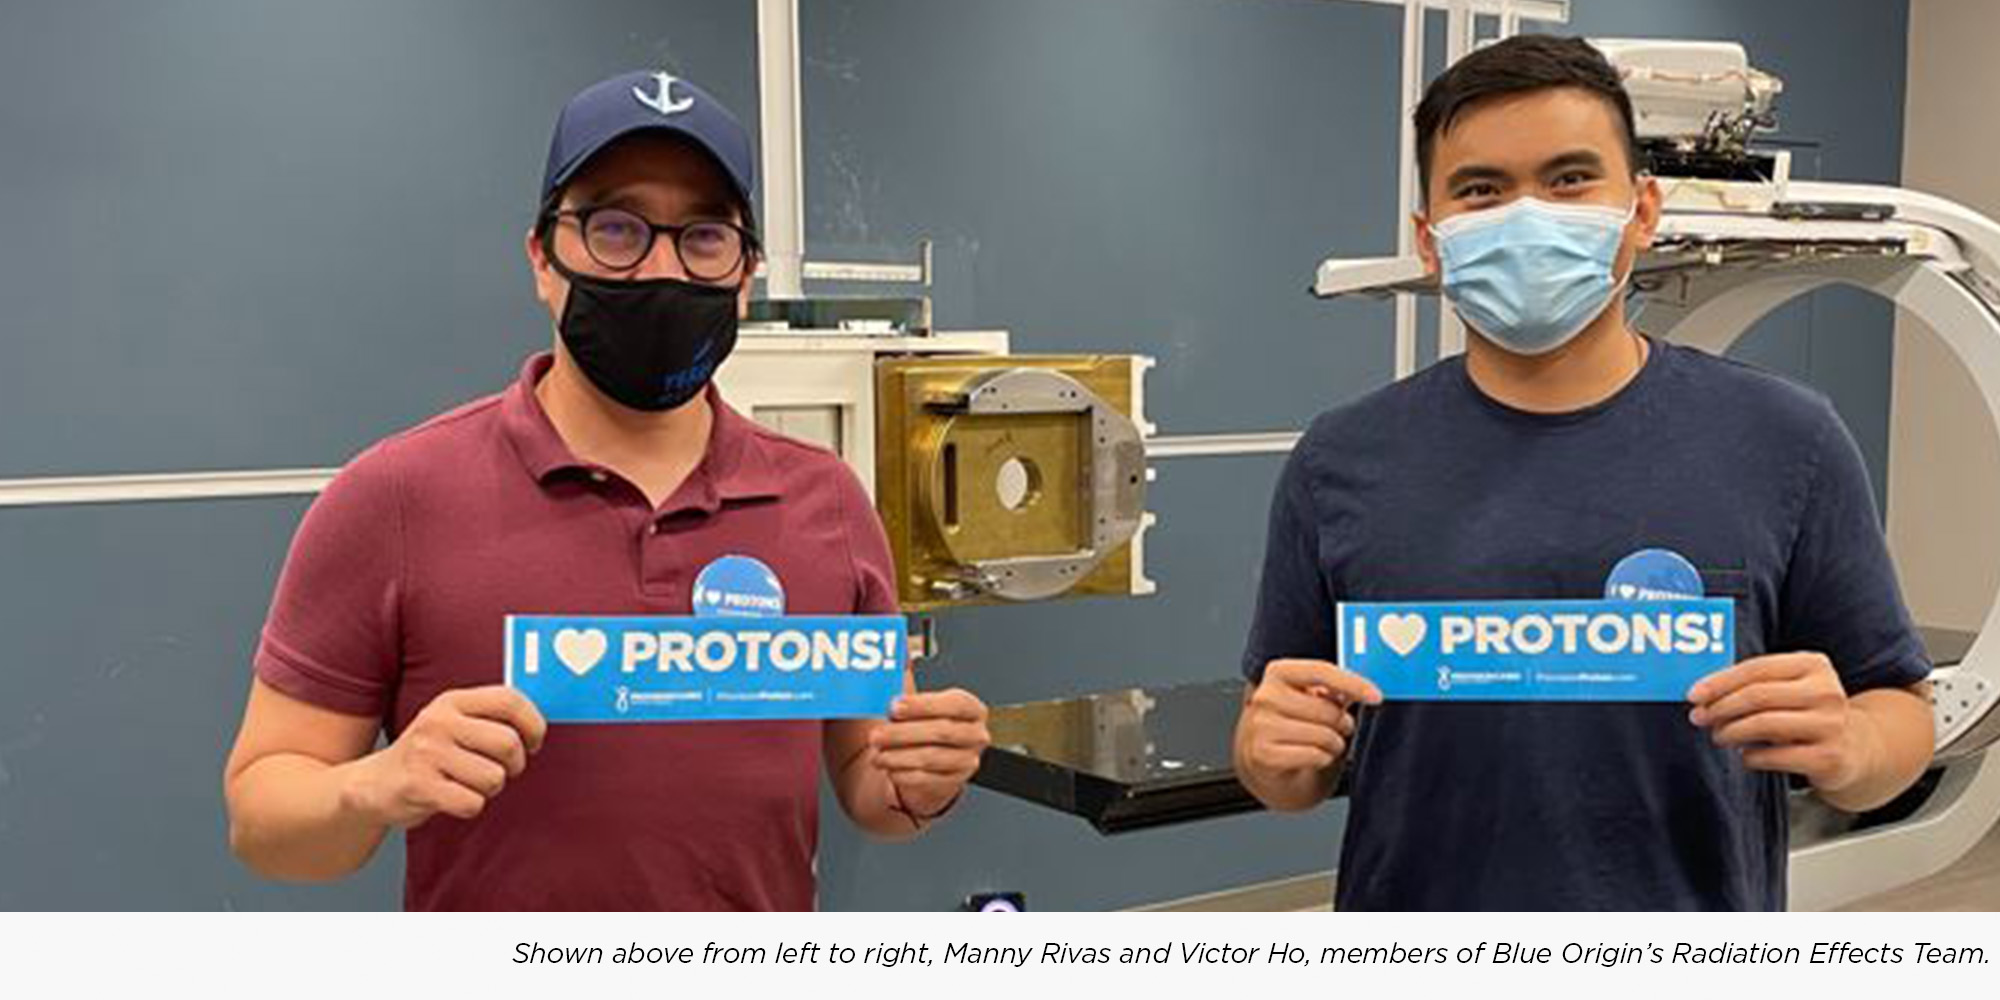 Members of Blue Origin's Radiation Effects Team pose while testing space travel equpiment at Provision CARES Proton Therapy Knoxville